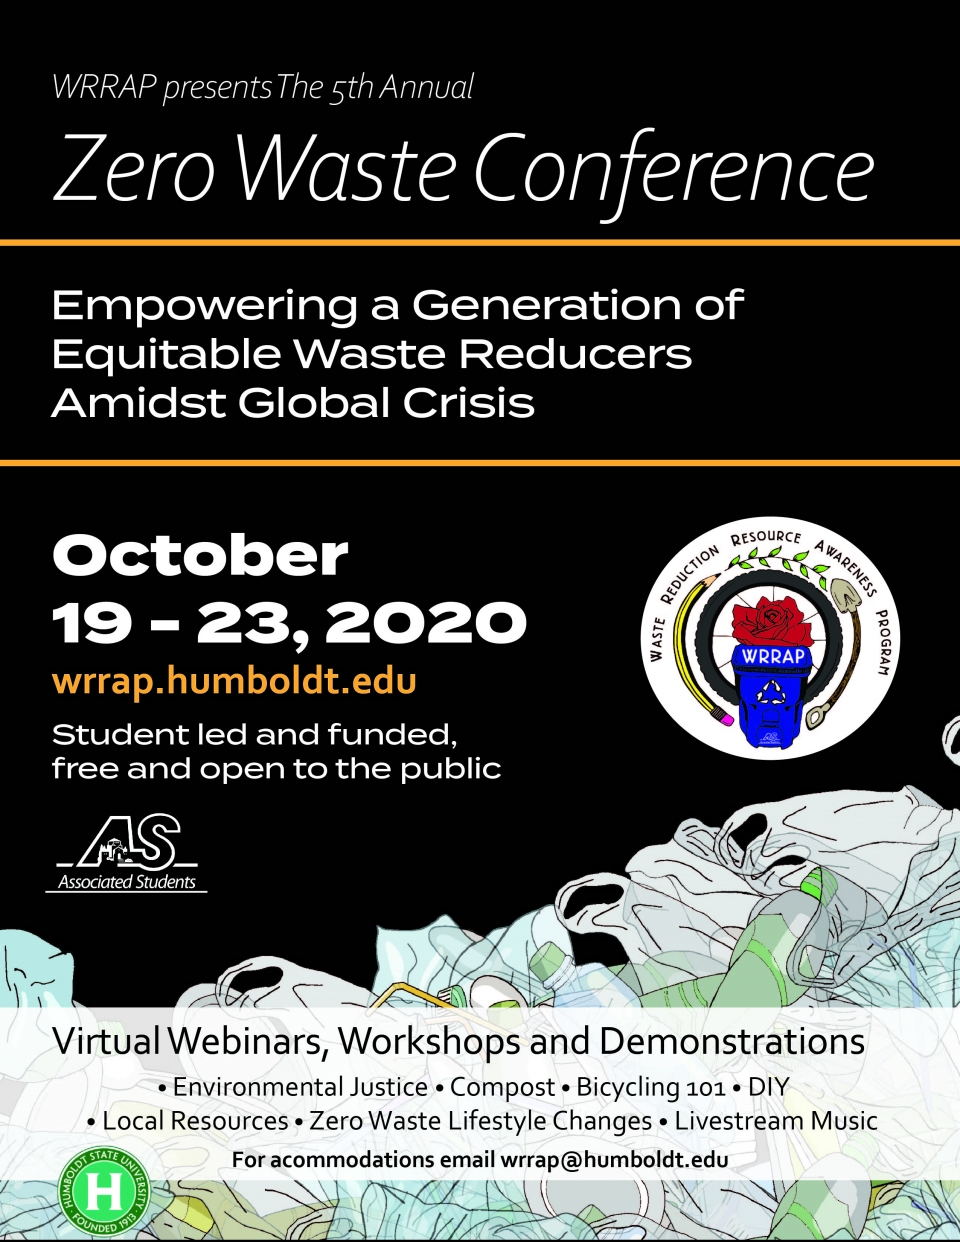 Zero Waste Conference announcement flyer, October 19-23, 2020